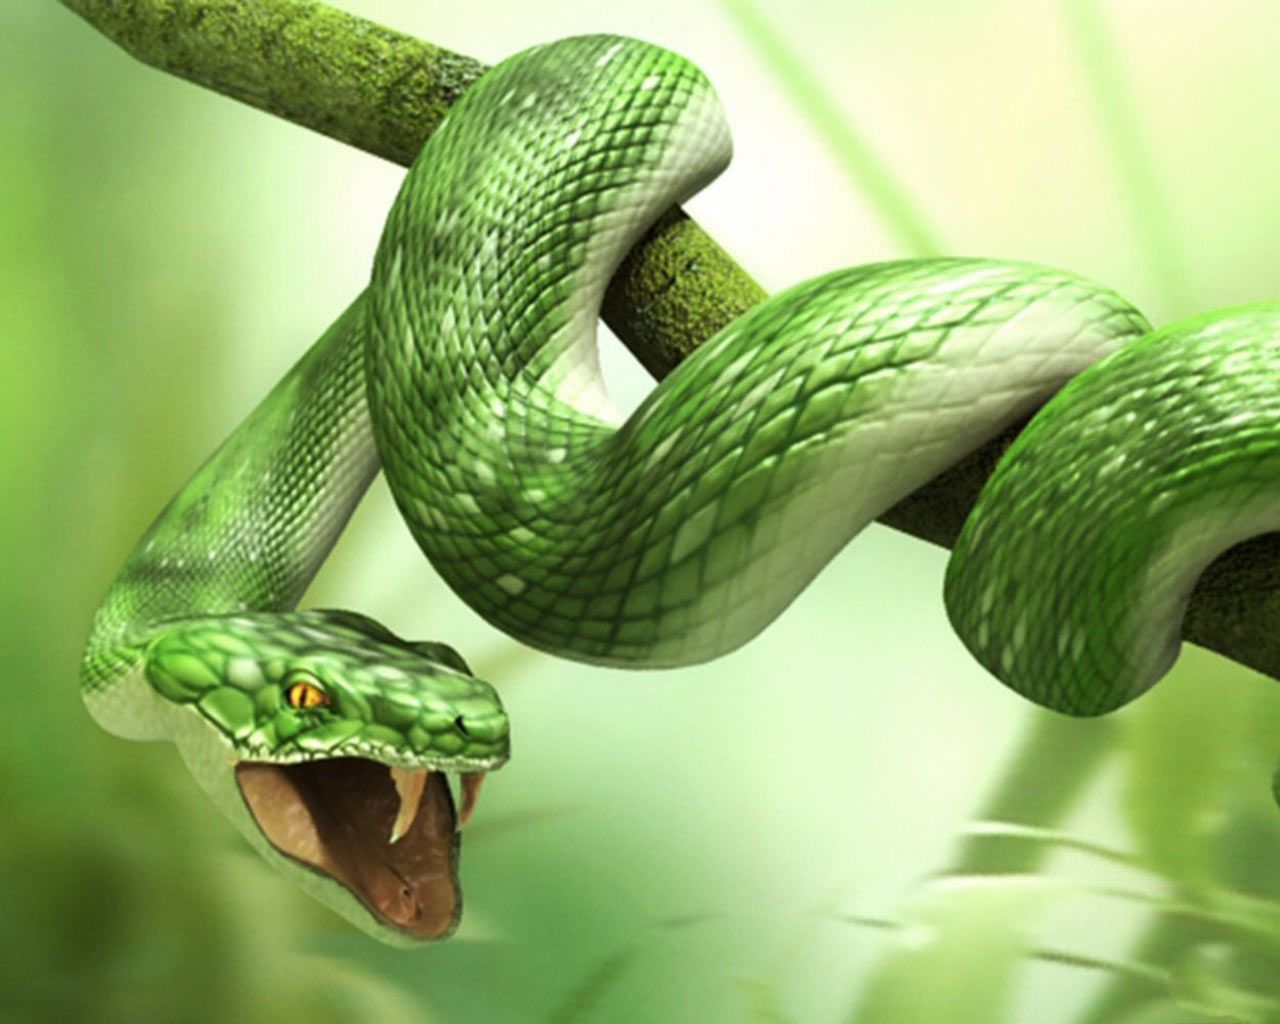 3d Animals Wallpapers Hd Snake Wallpaper Snake Animal Wallpaper